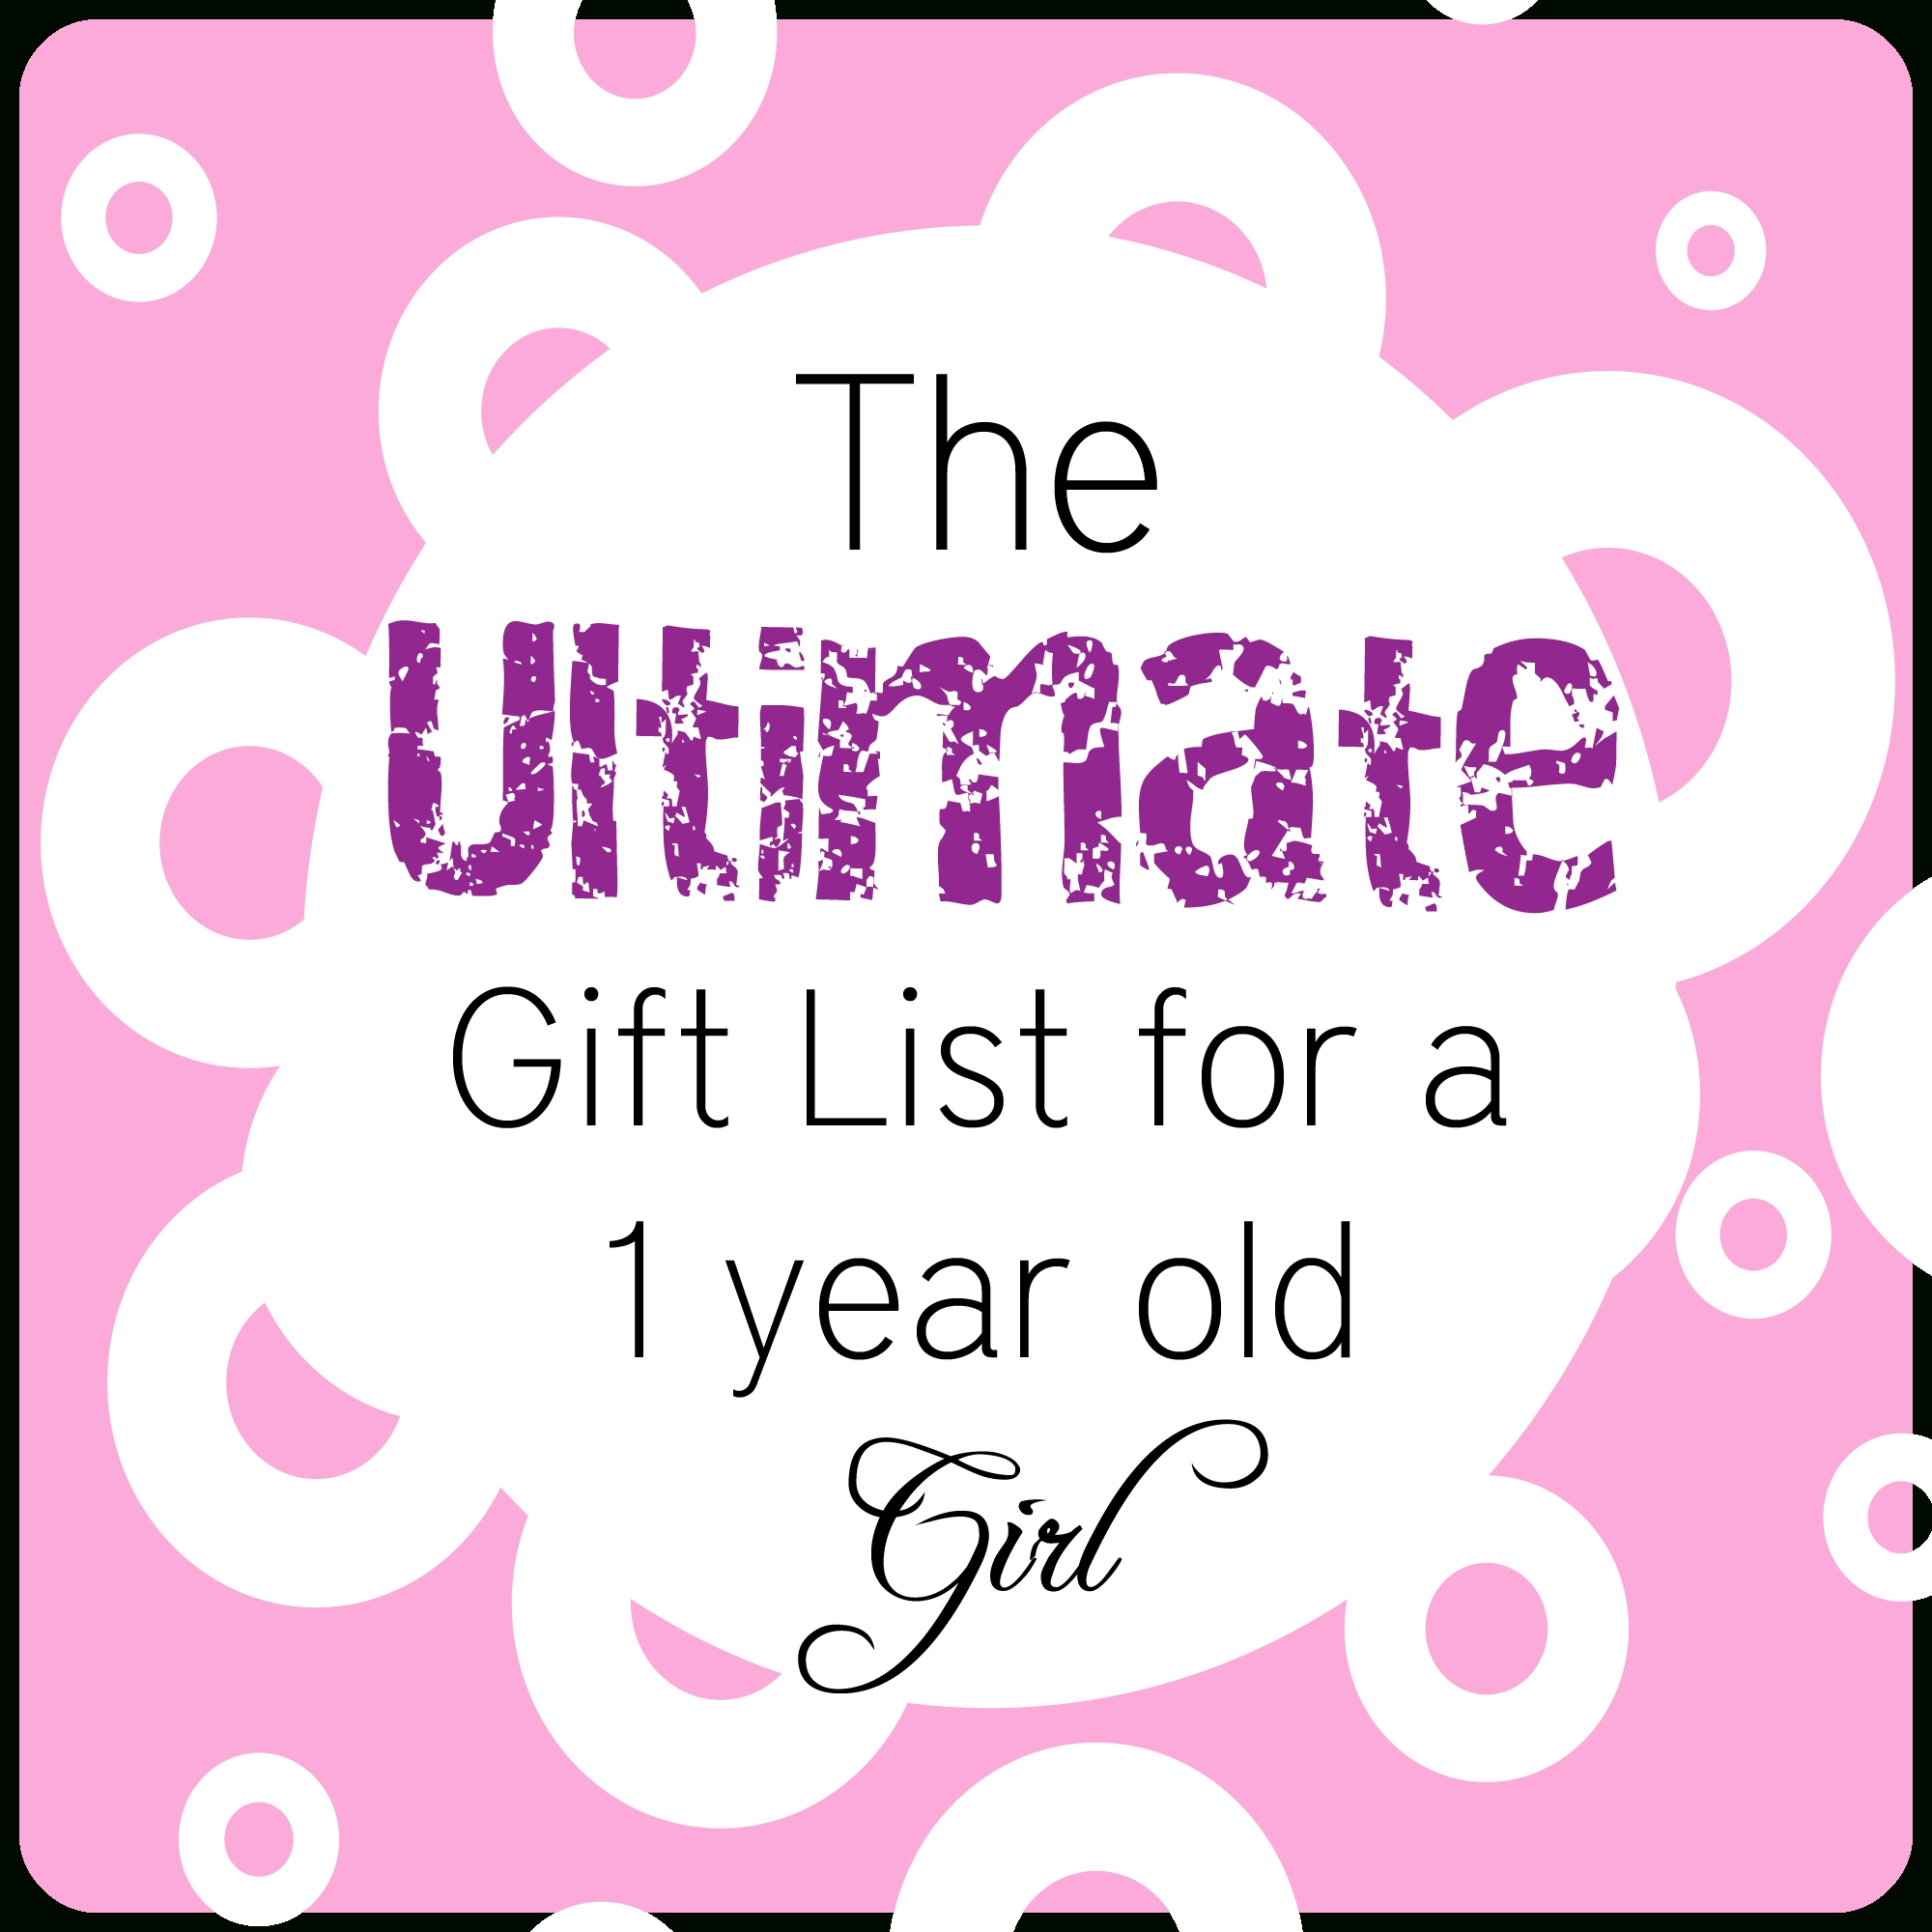 10 Best Gift Ideas For 1 Year Old Girl the ultimate gift list for a 1 year old girl e280a2 the pinning mama 2020